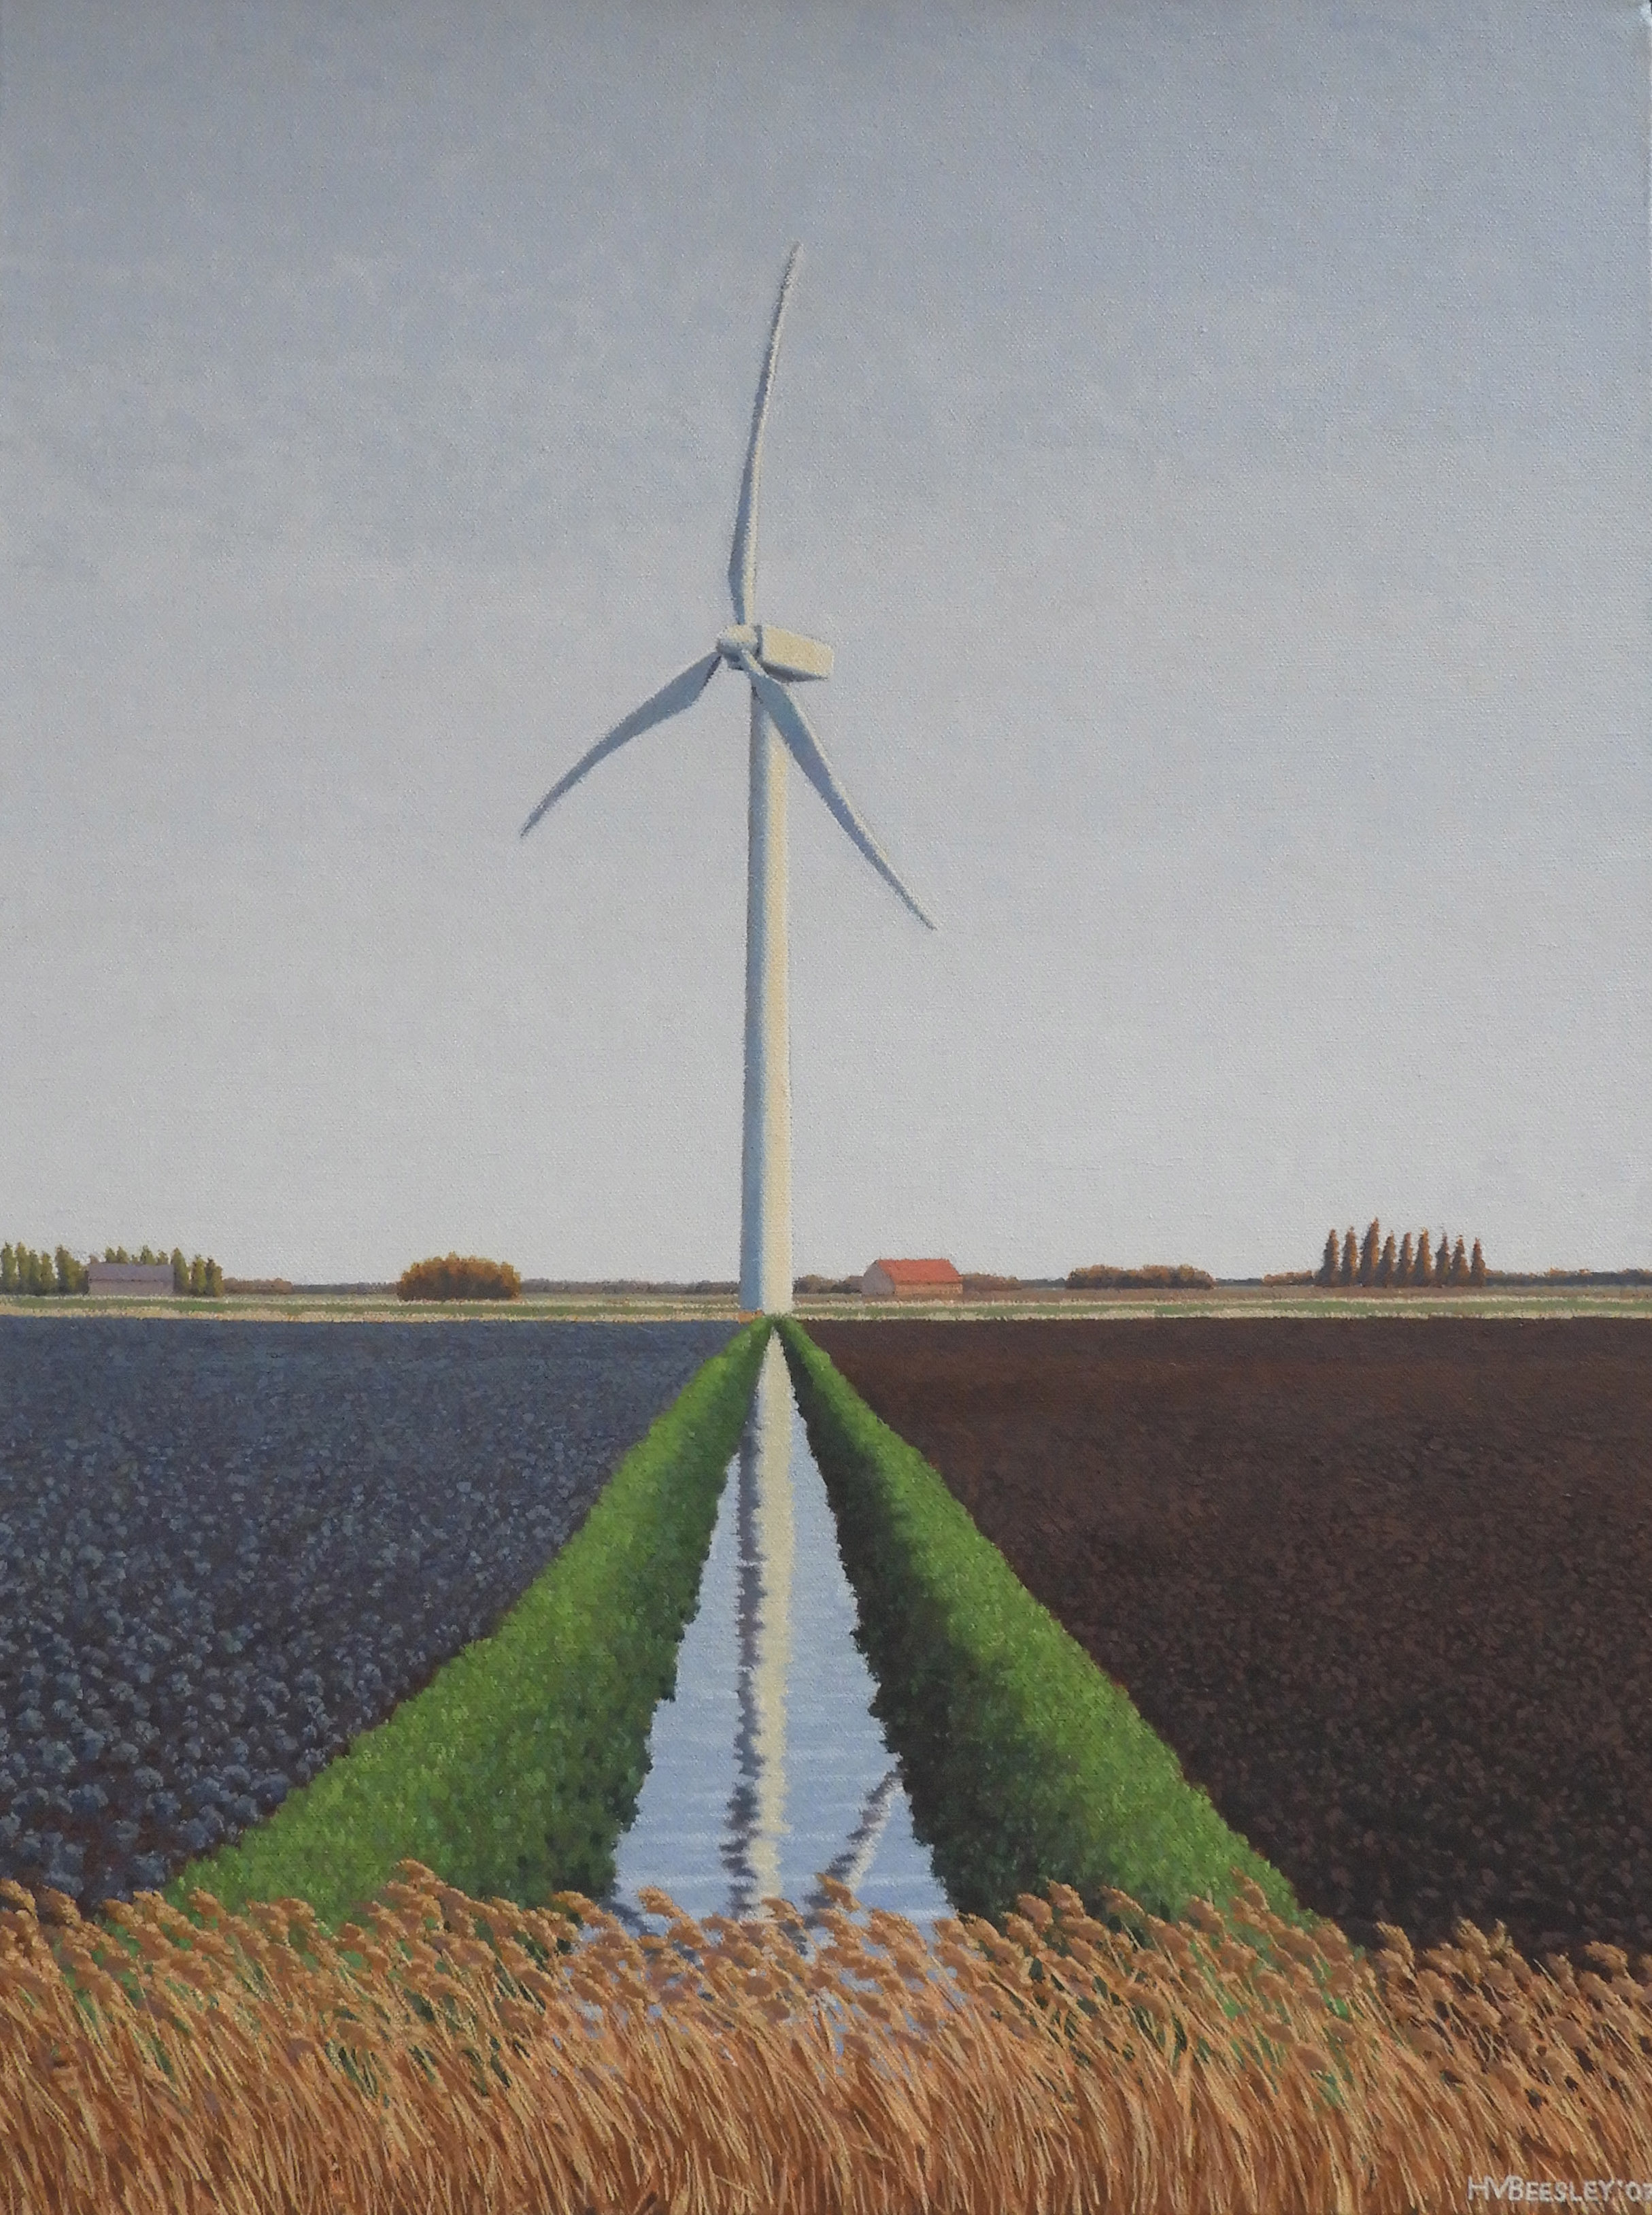 WIND TURBINE No. 24